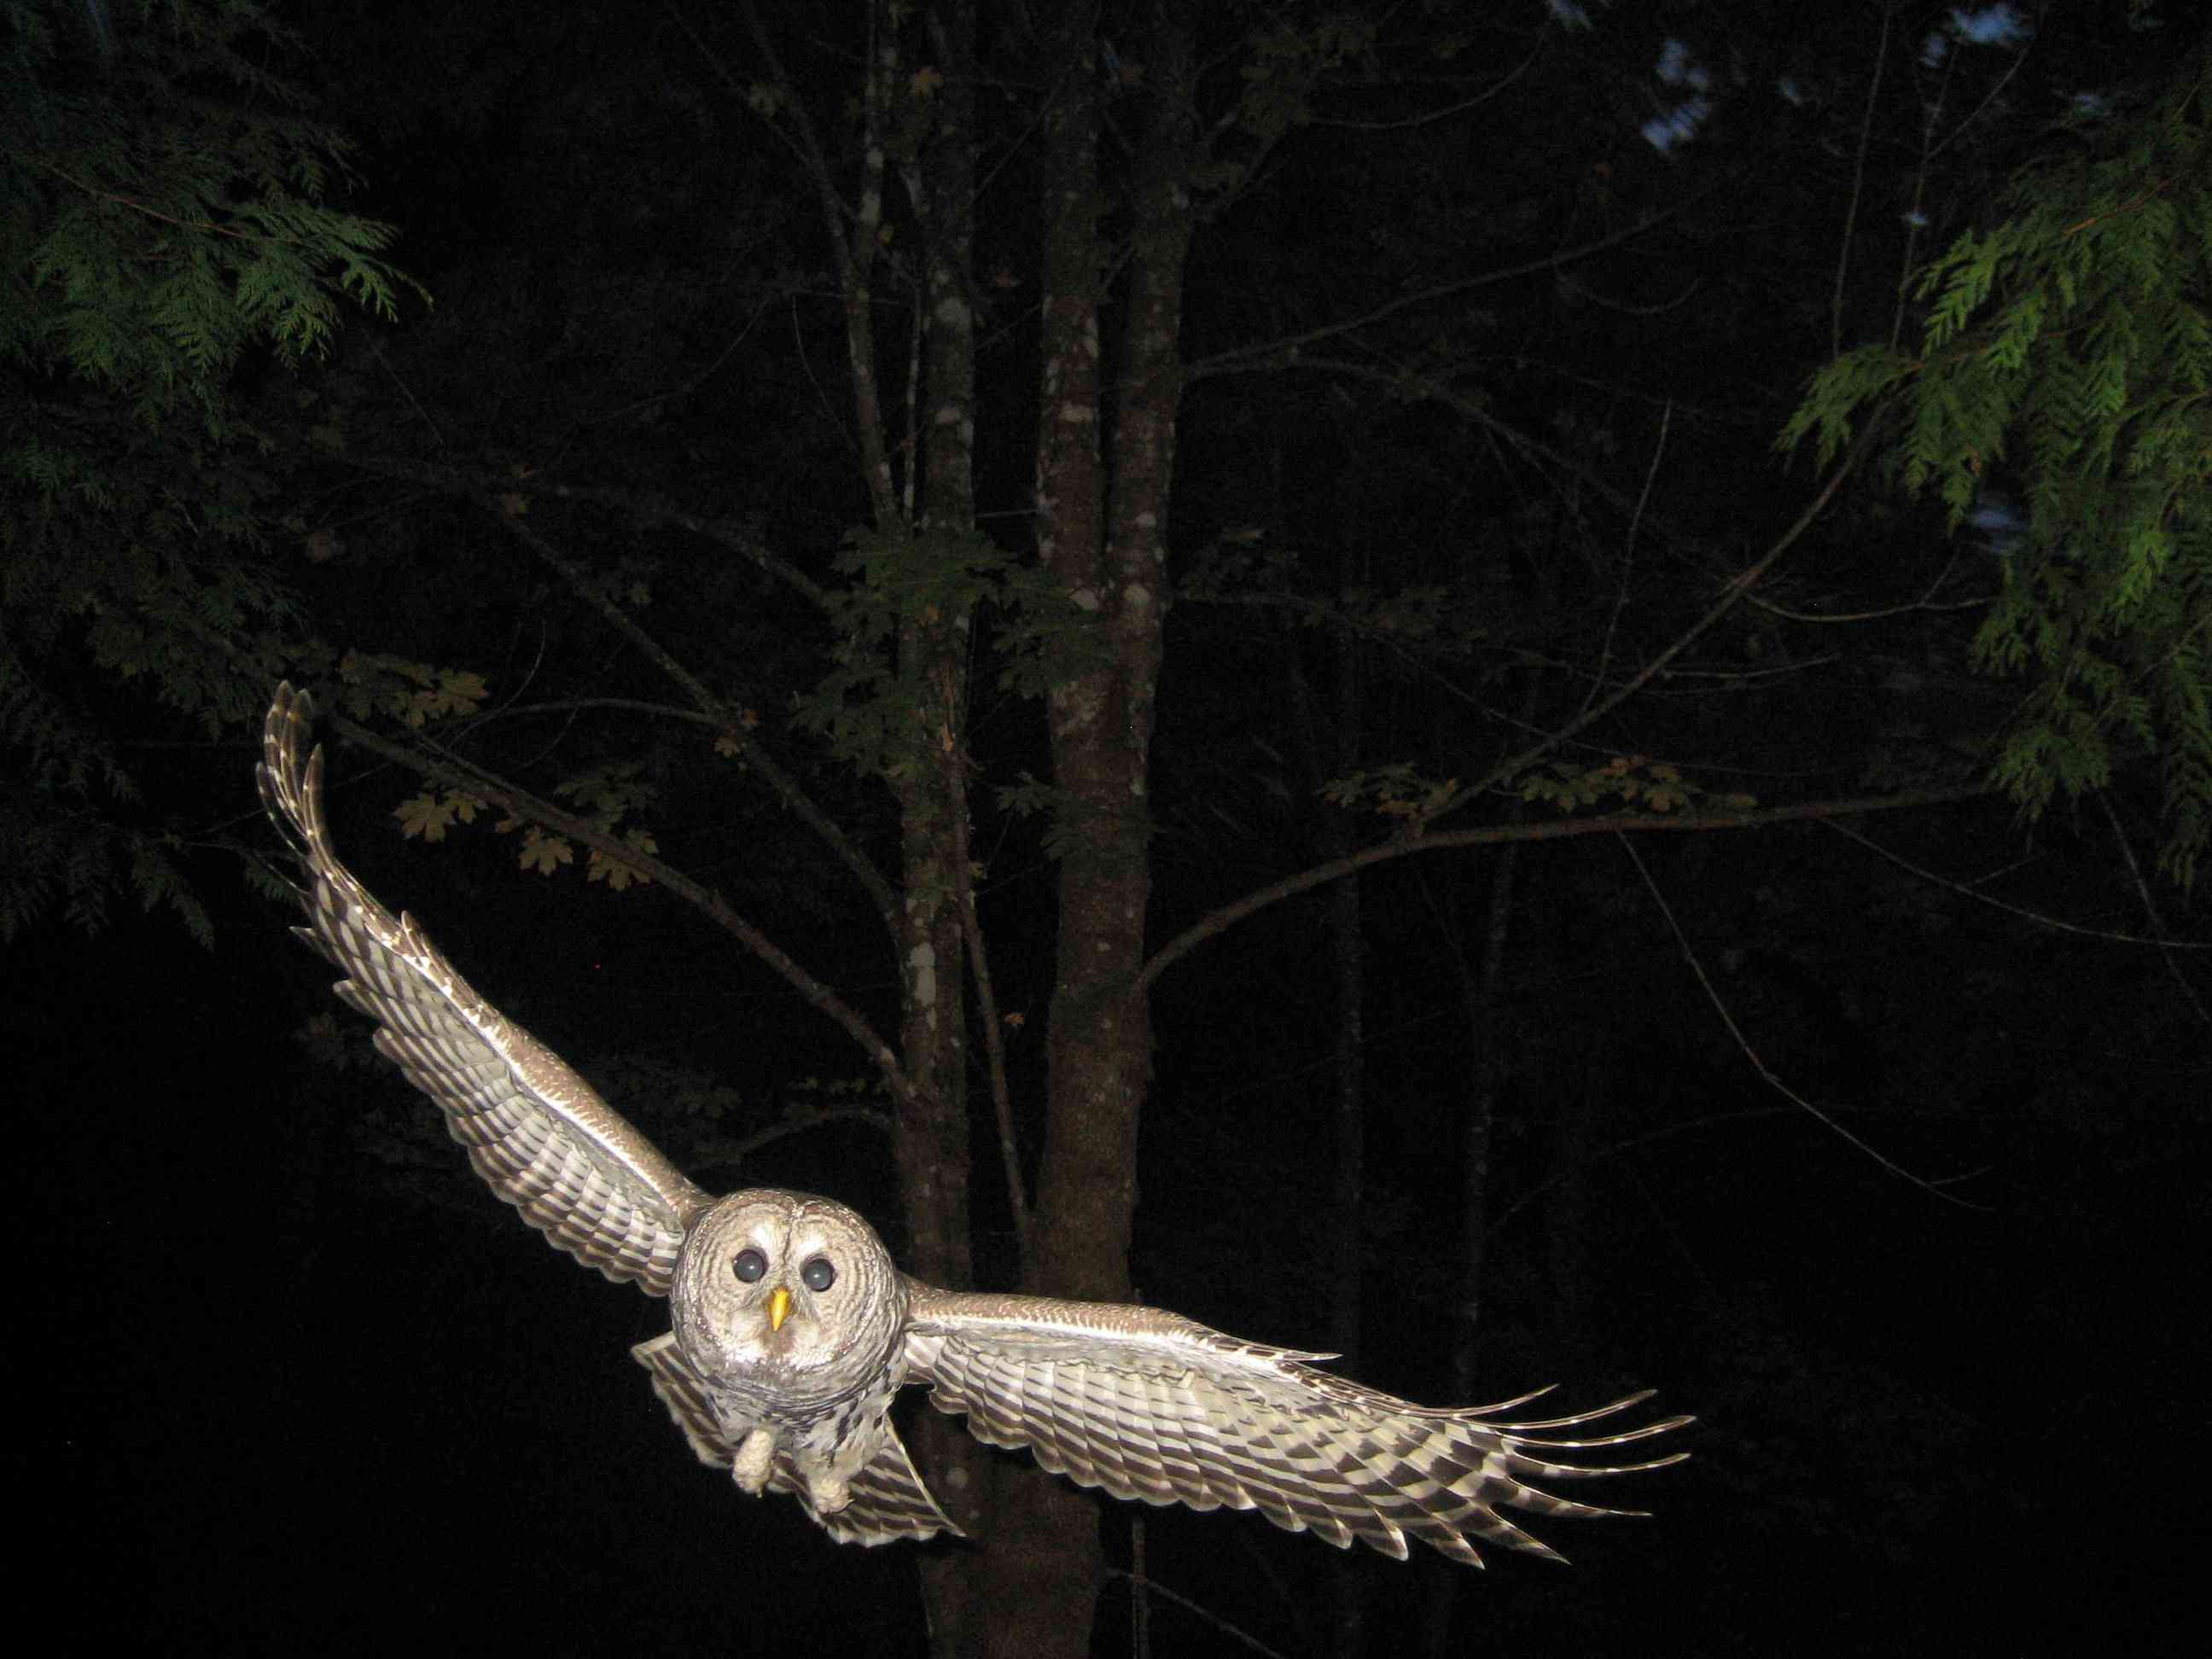 barred owl flying at night